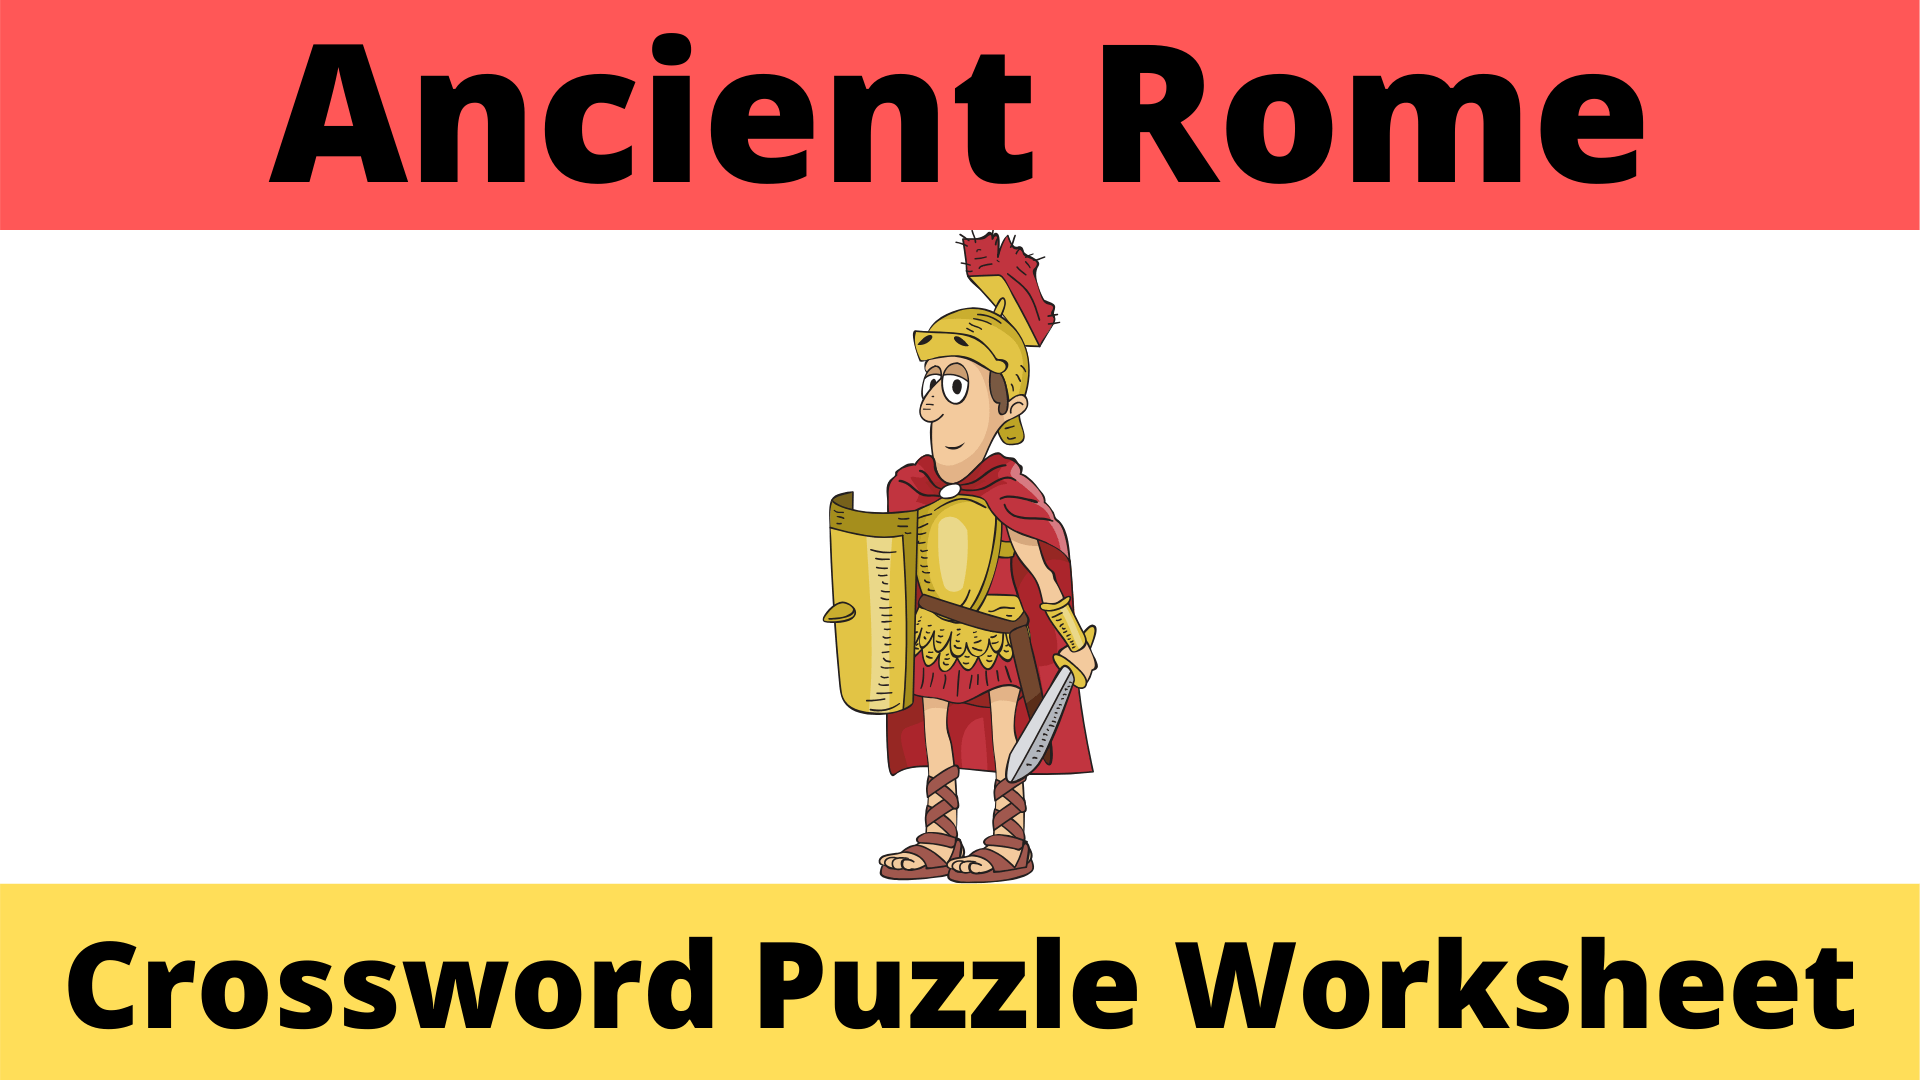 Ancient Rome Crossword Puzzle